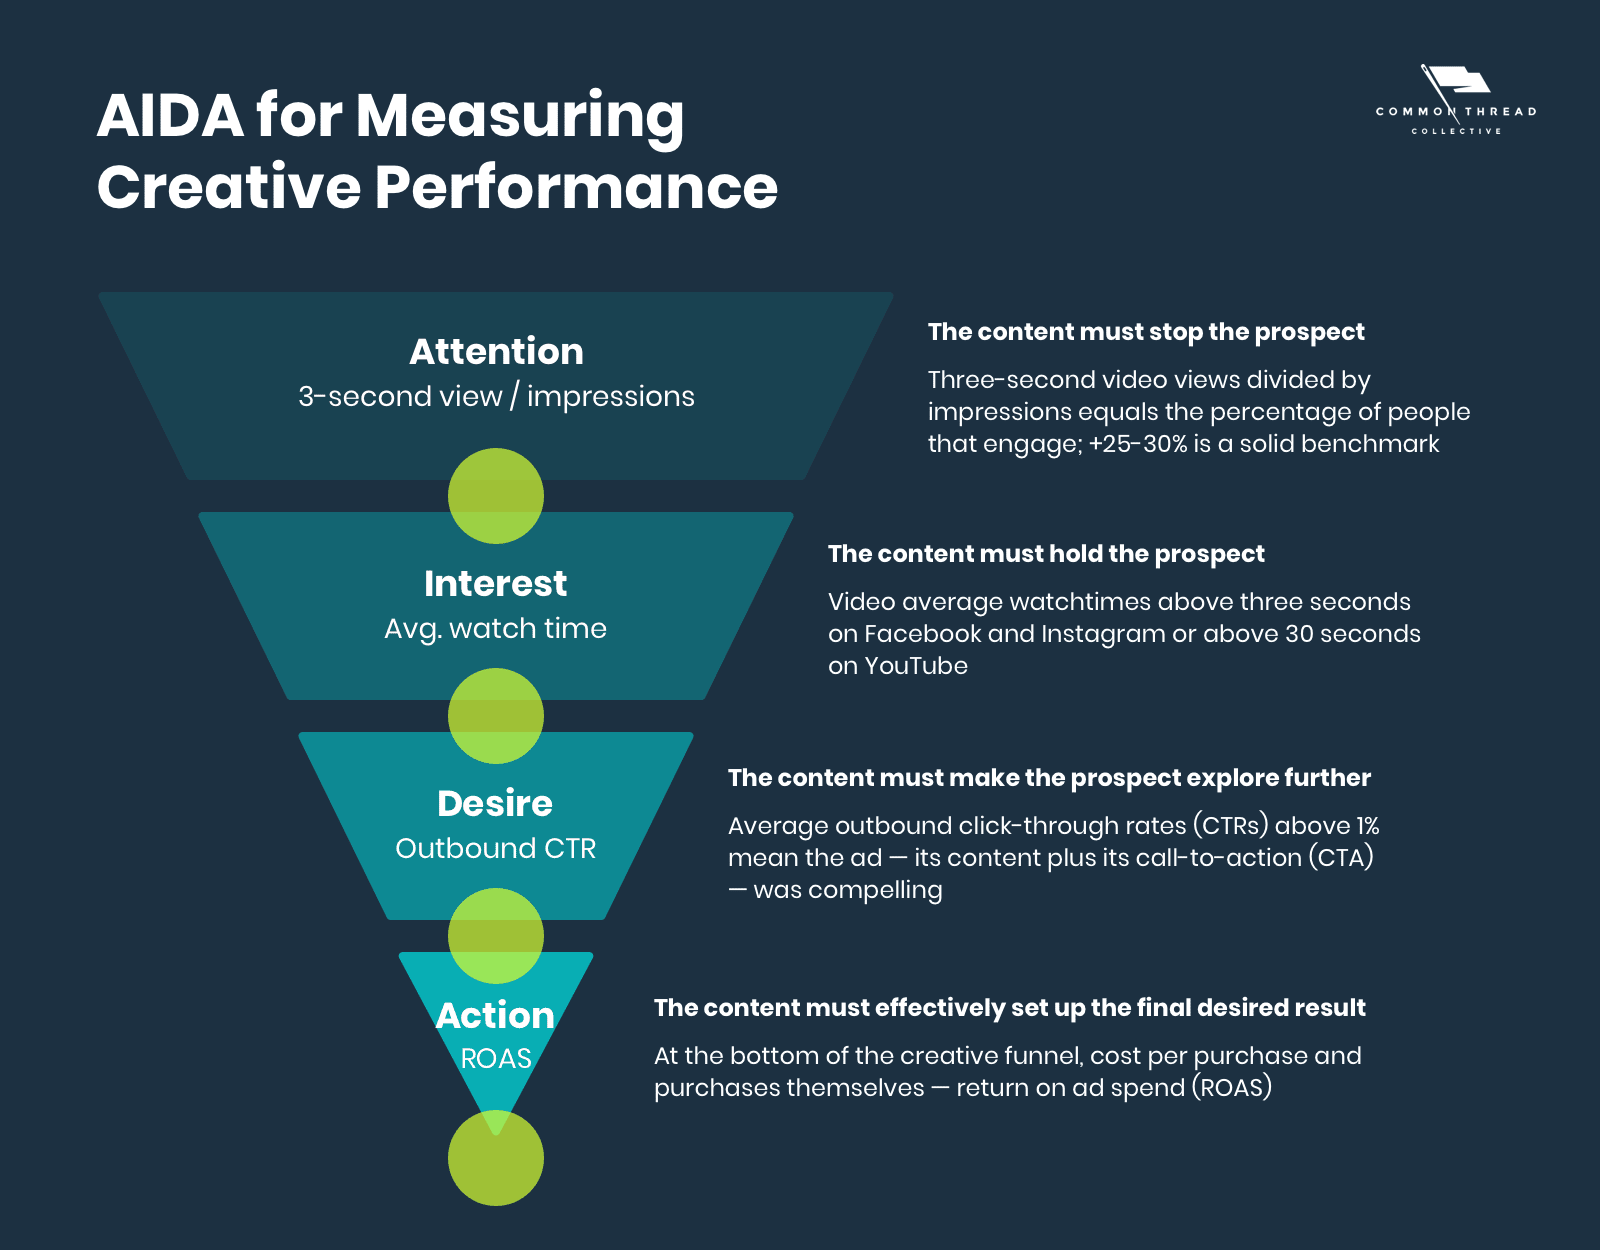 AIDA for Measuring Creative Performance